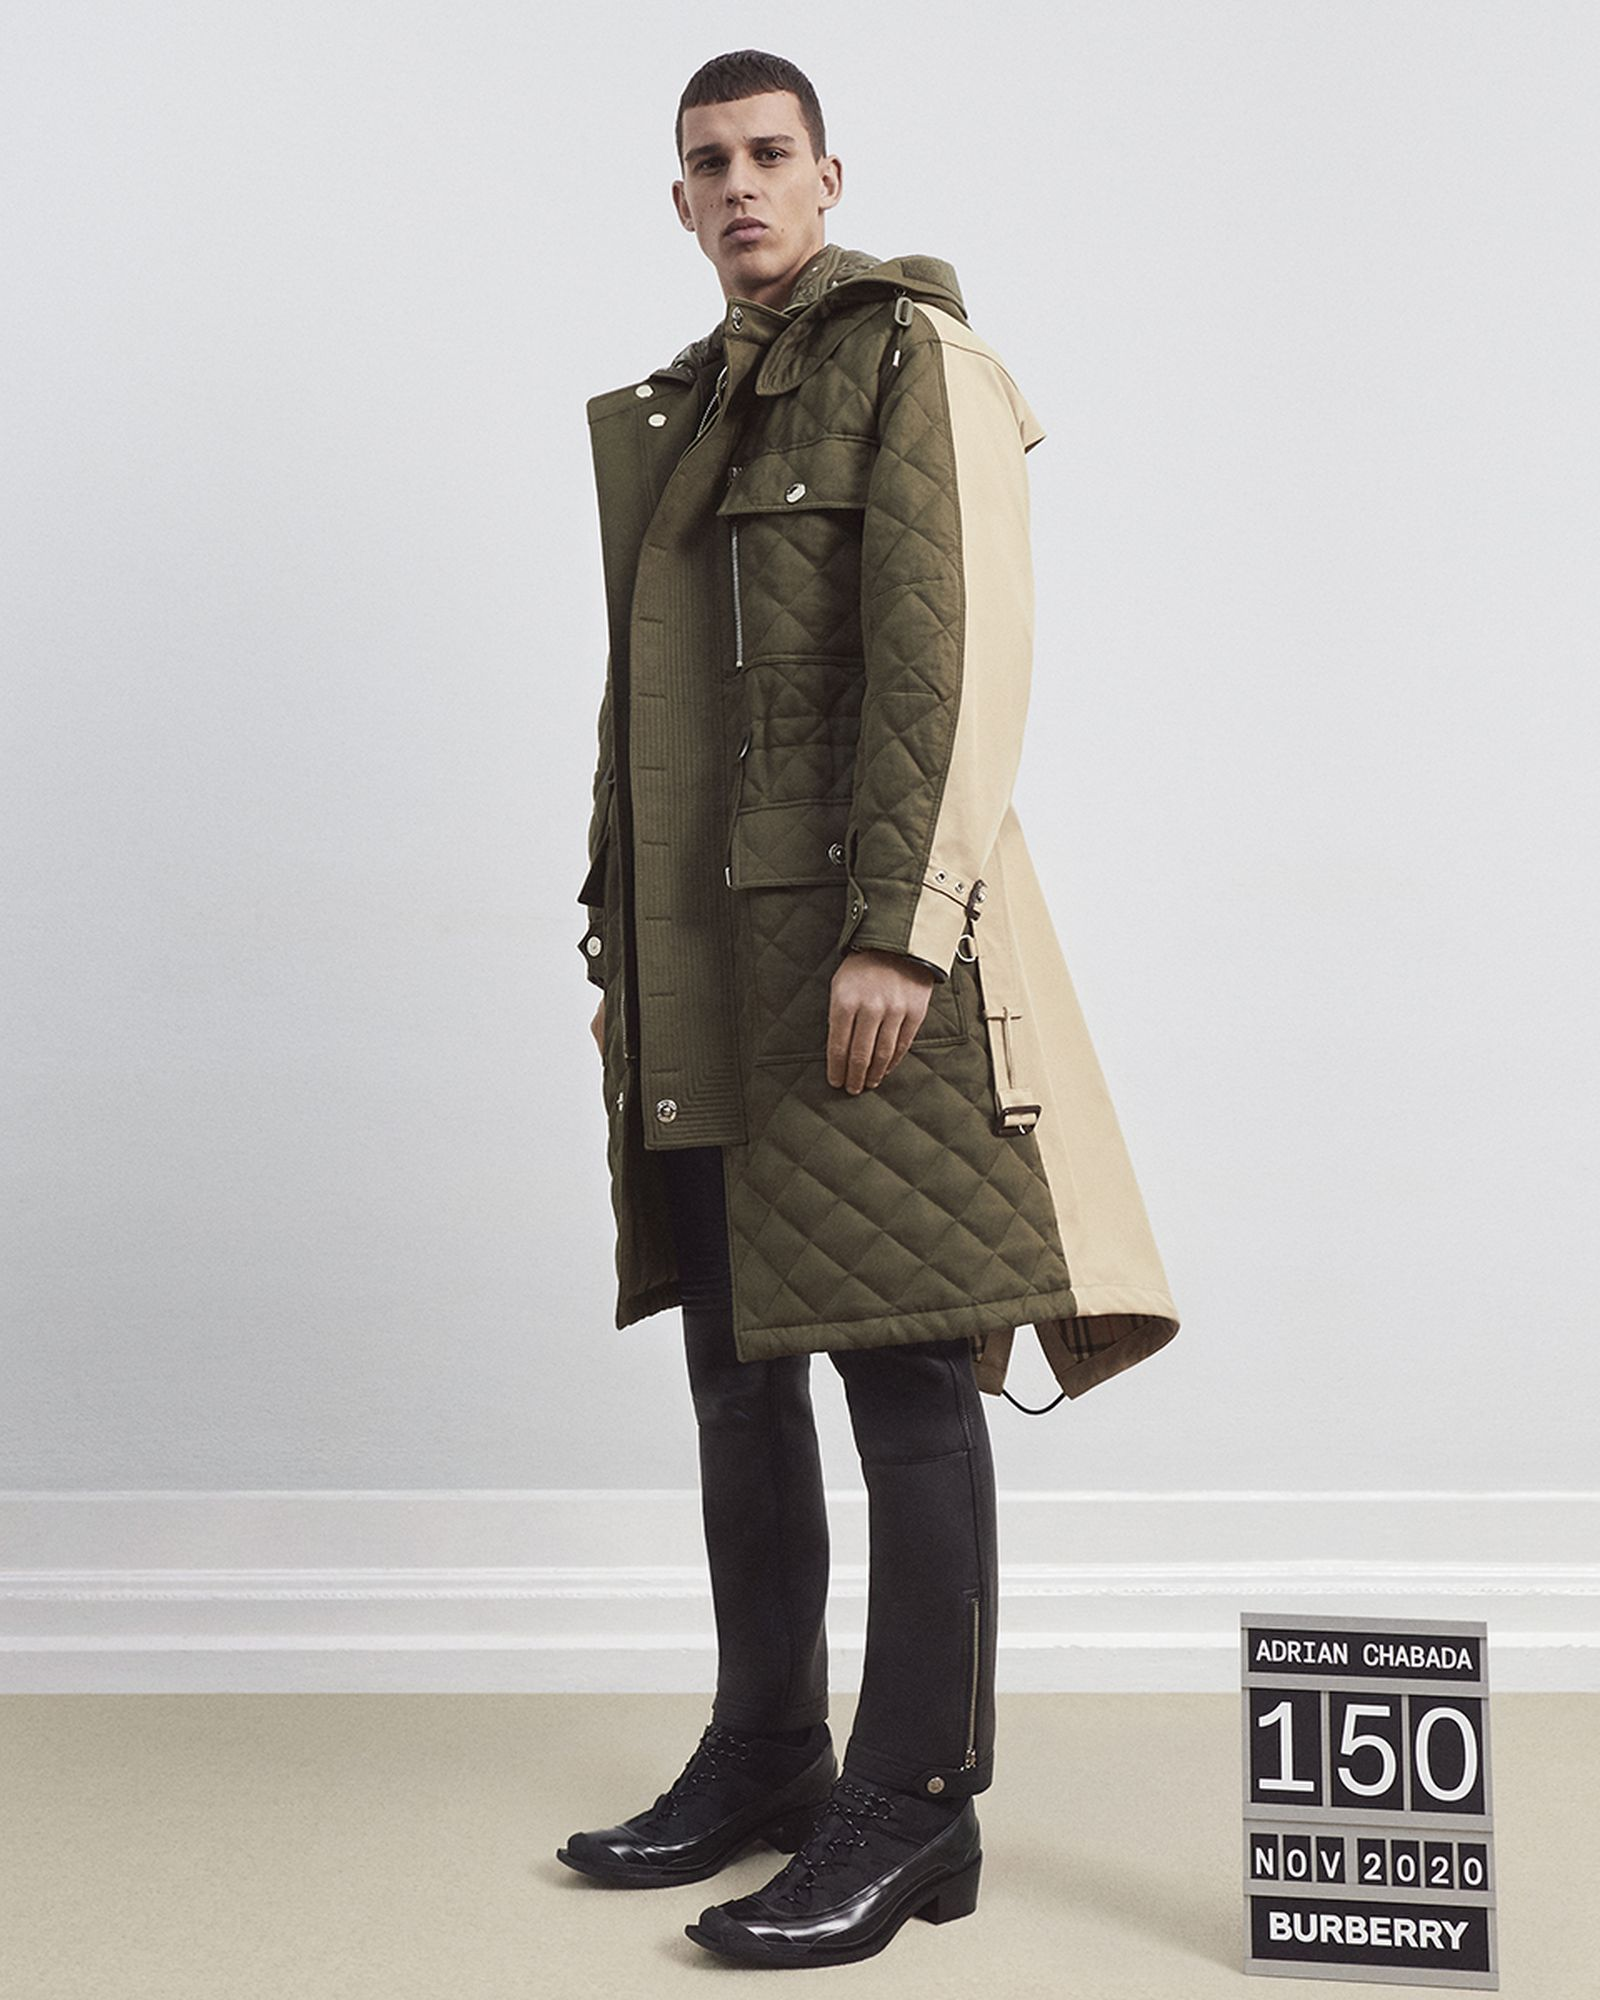 burberry-future-archive-collection-03